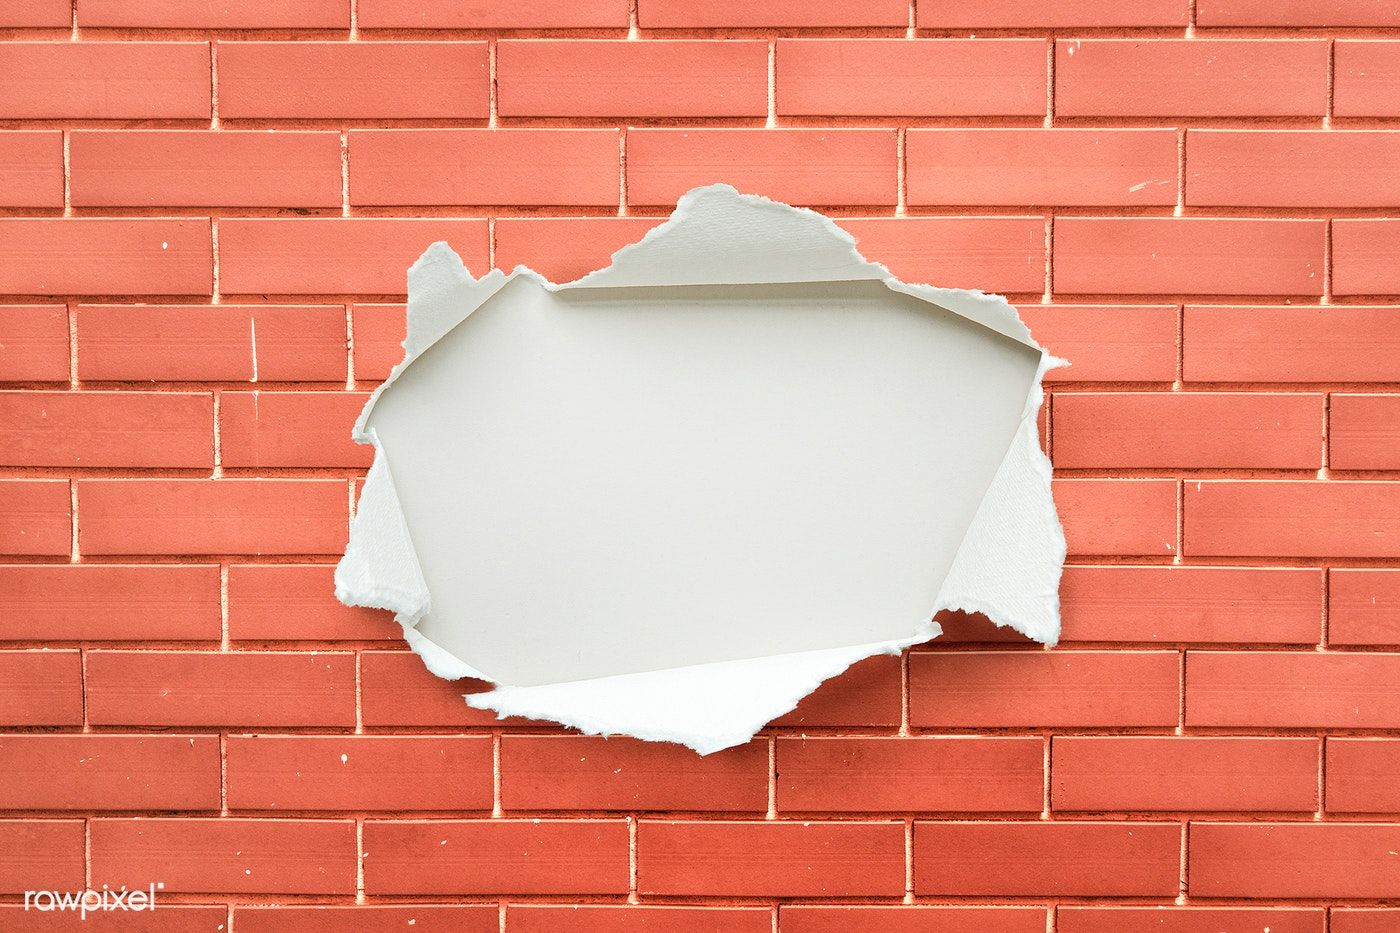 Download Premium Psd Of Torn Paper Mockup On A Brick Wall 1015193 Paper Mockup Torn Paper Design Mockup Free